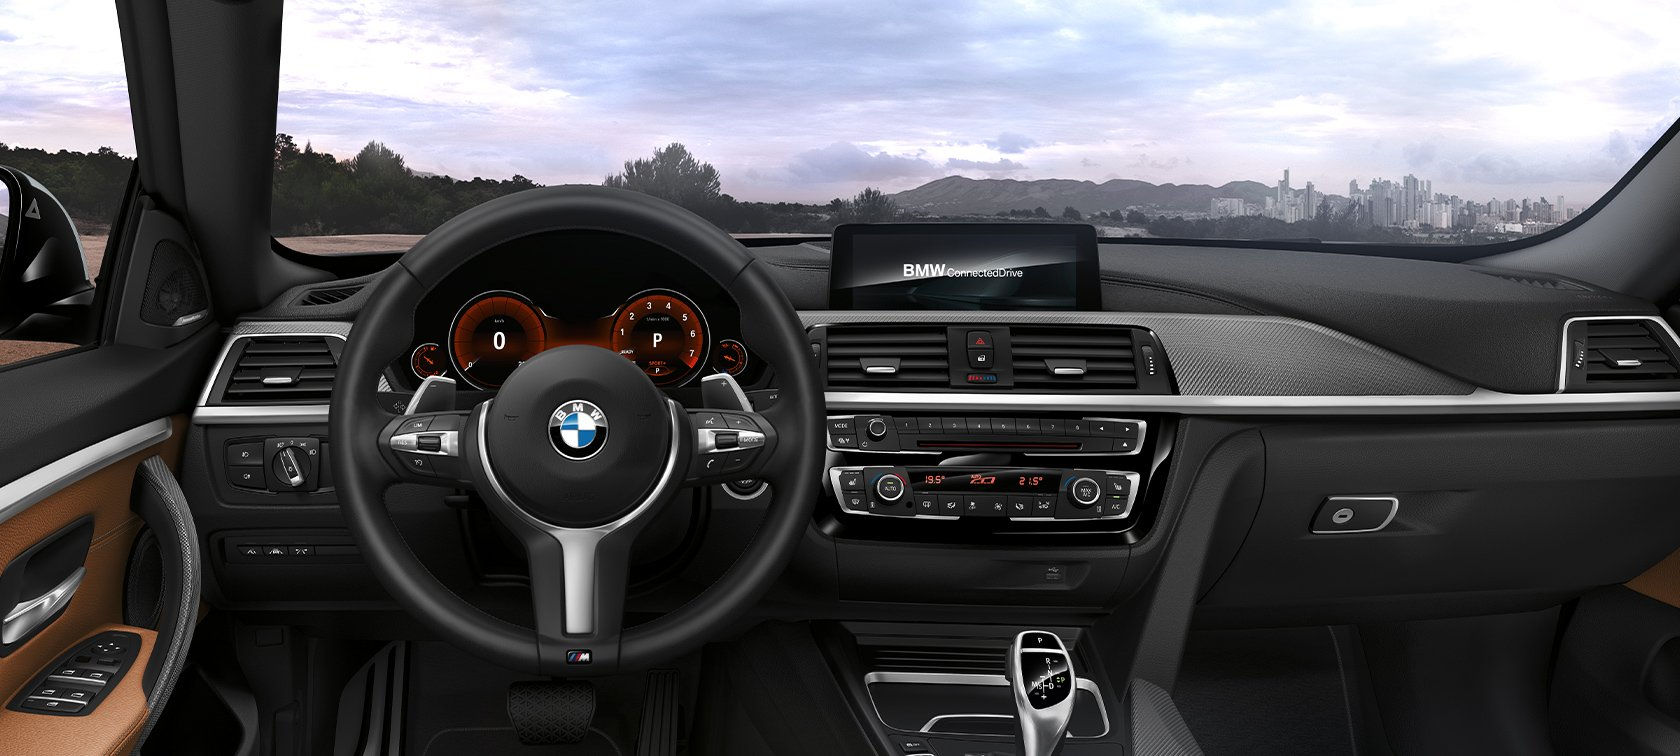 CarPlay is onderdeel van BMW Connected Drive